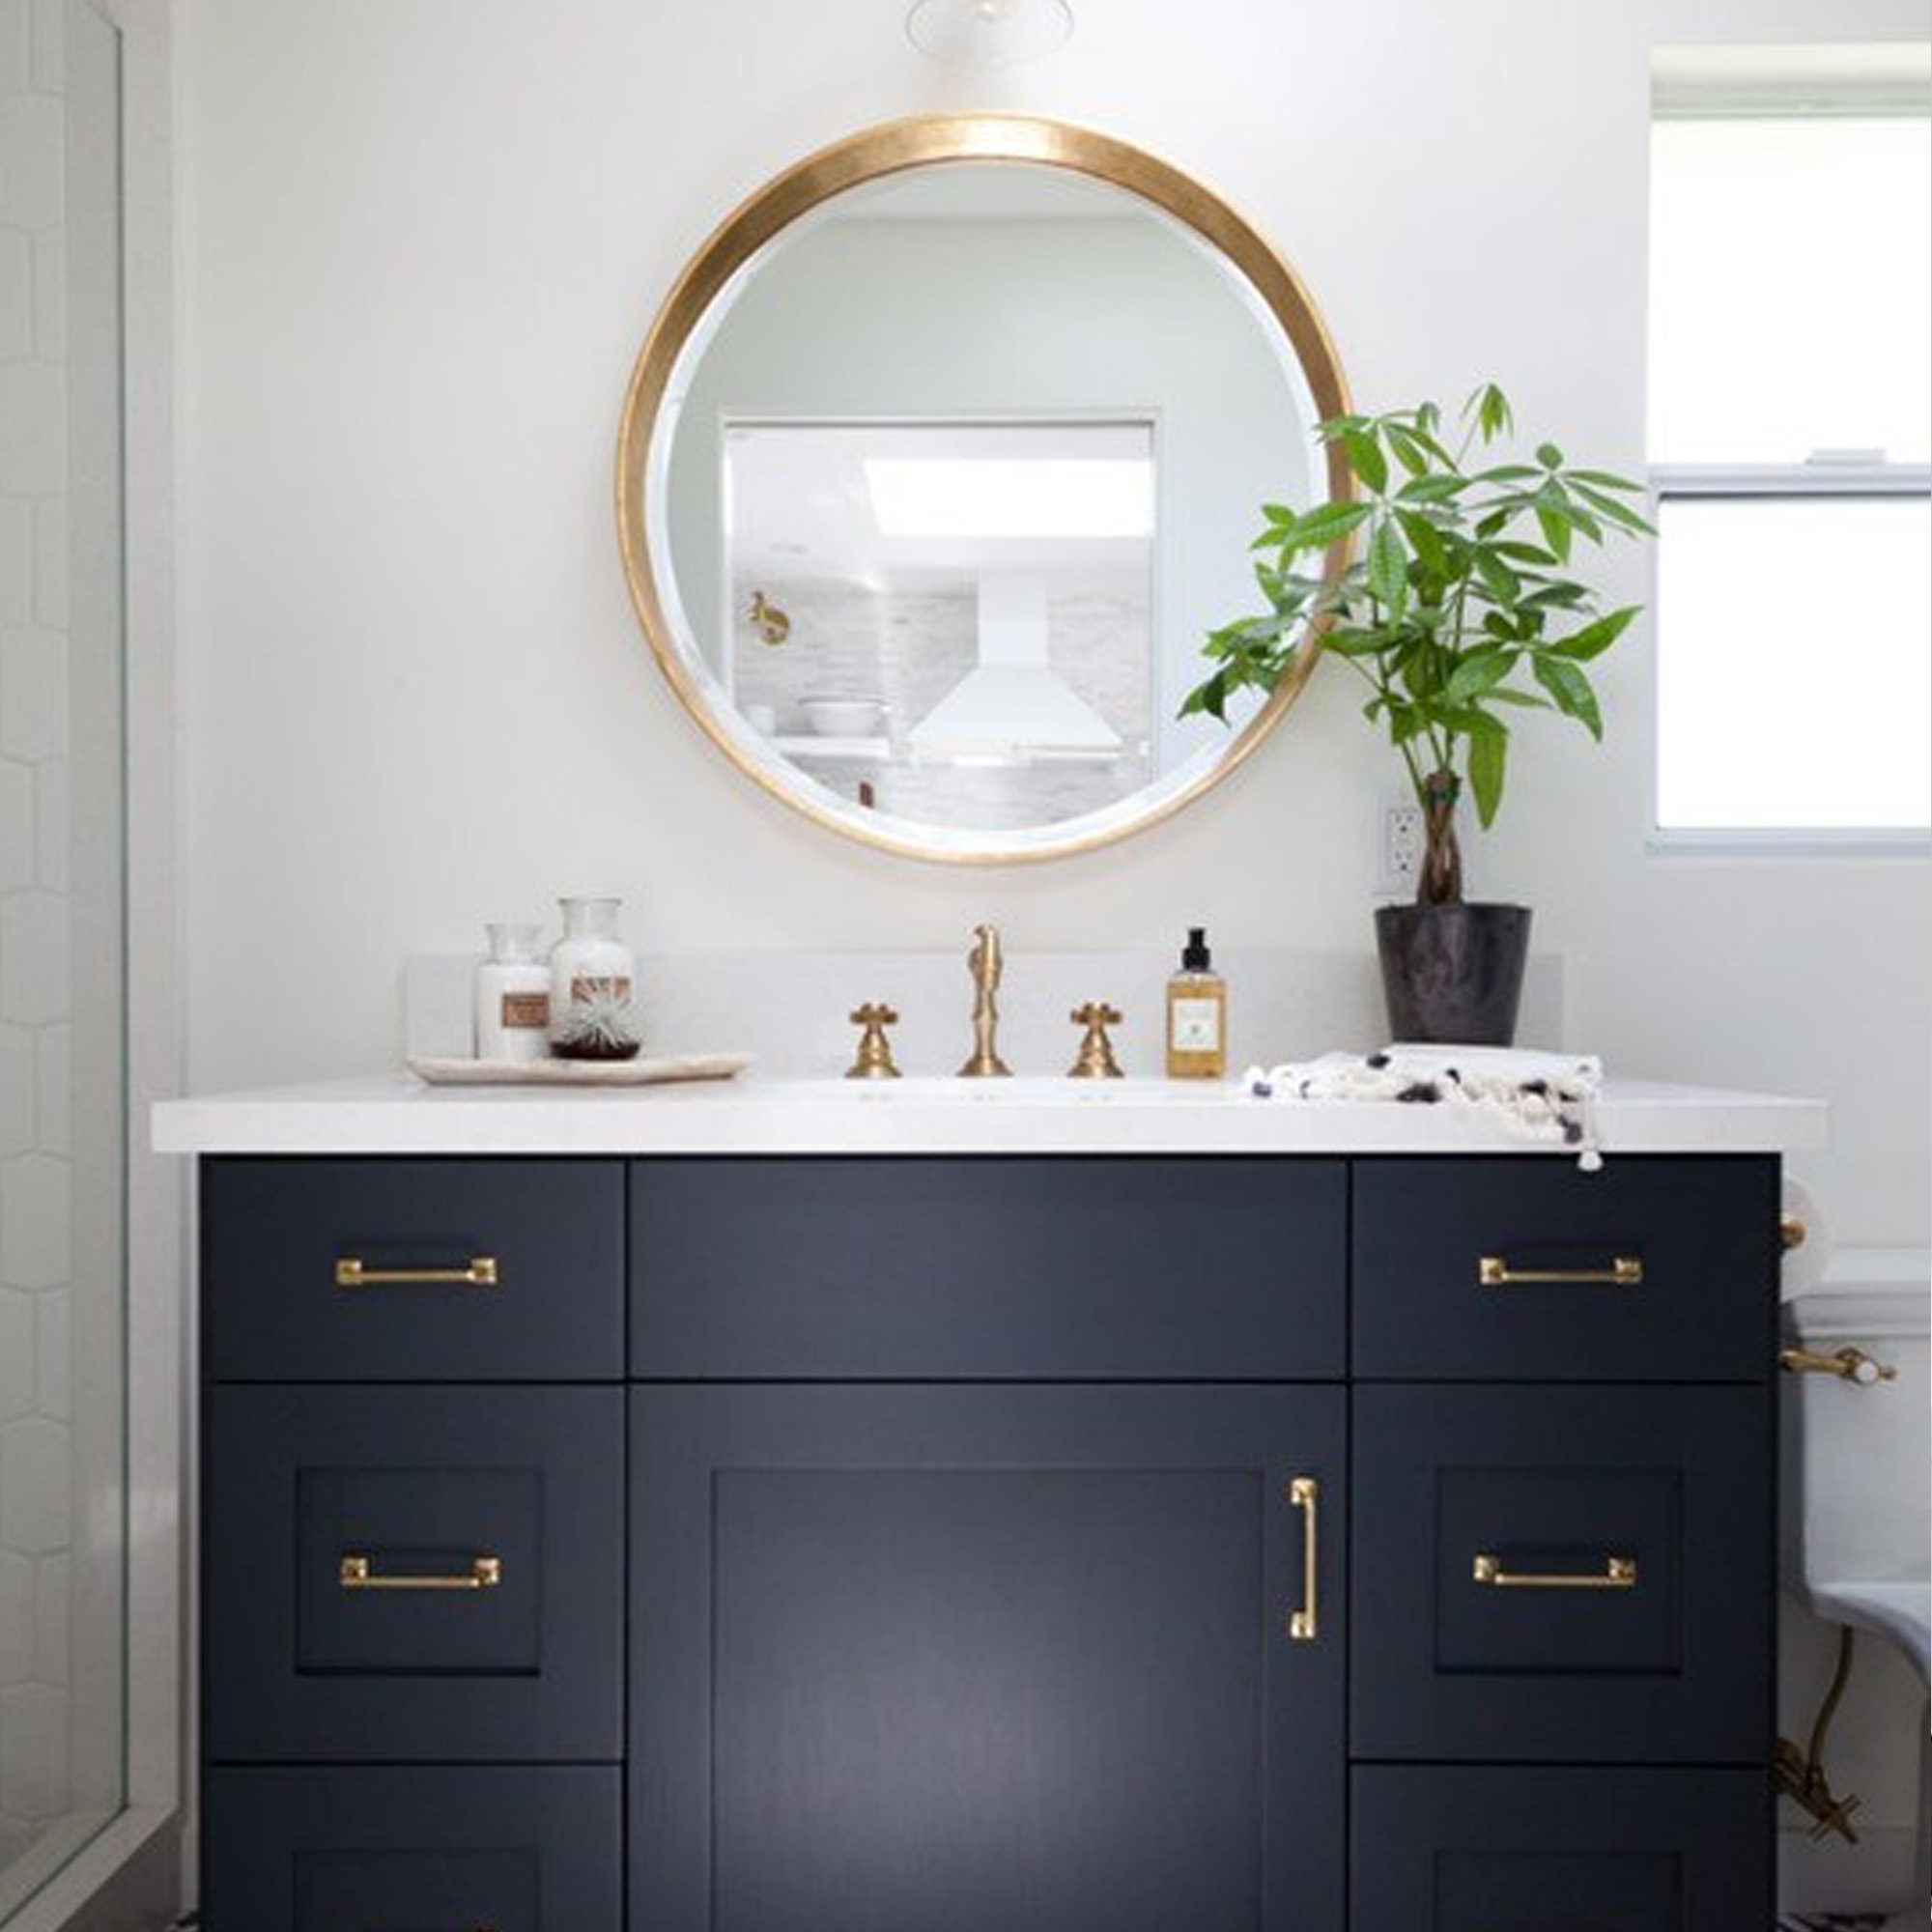 Guest Bathroom Decorating Ideas How High To Place Your Bathroom Fixtures Inspired To Style